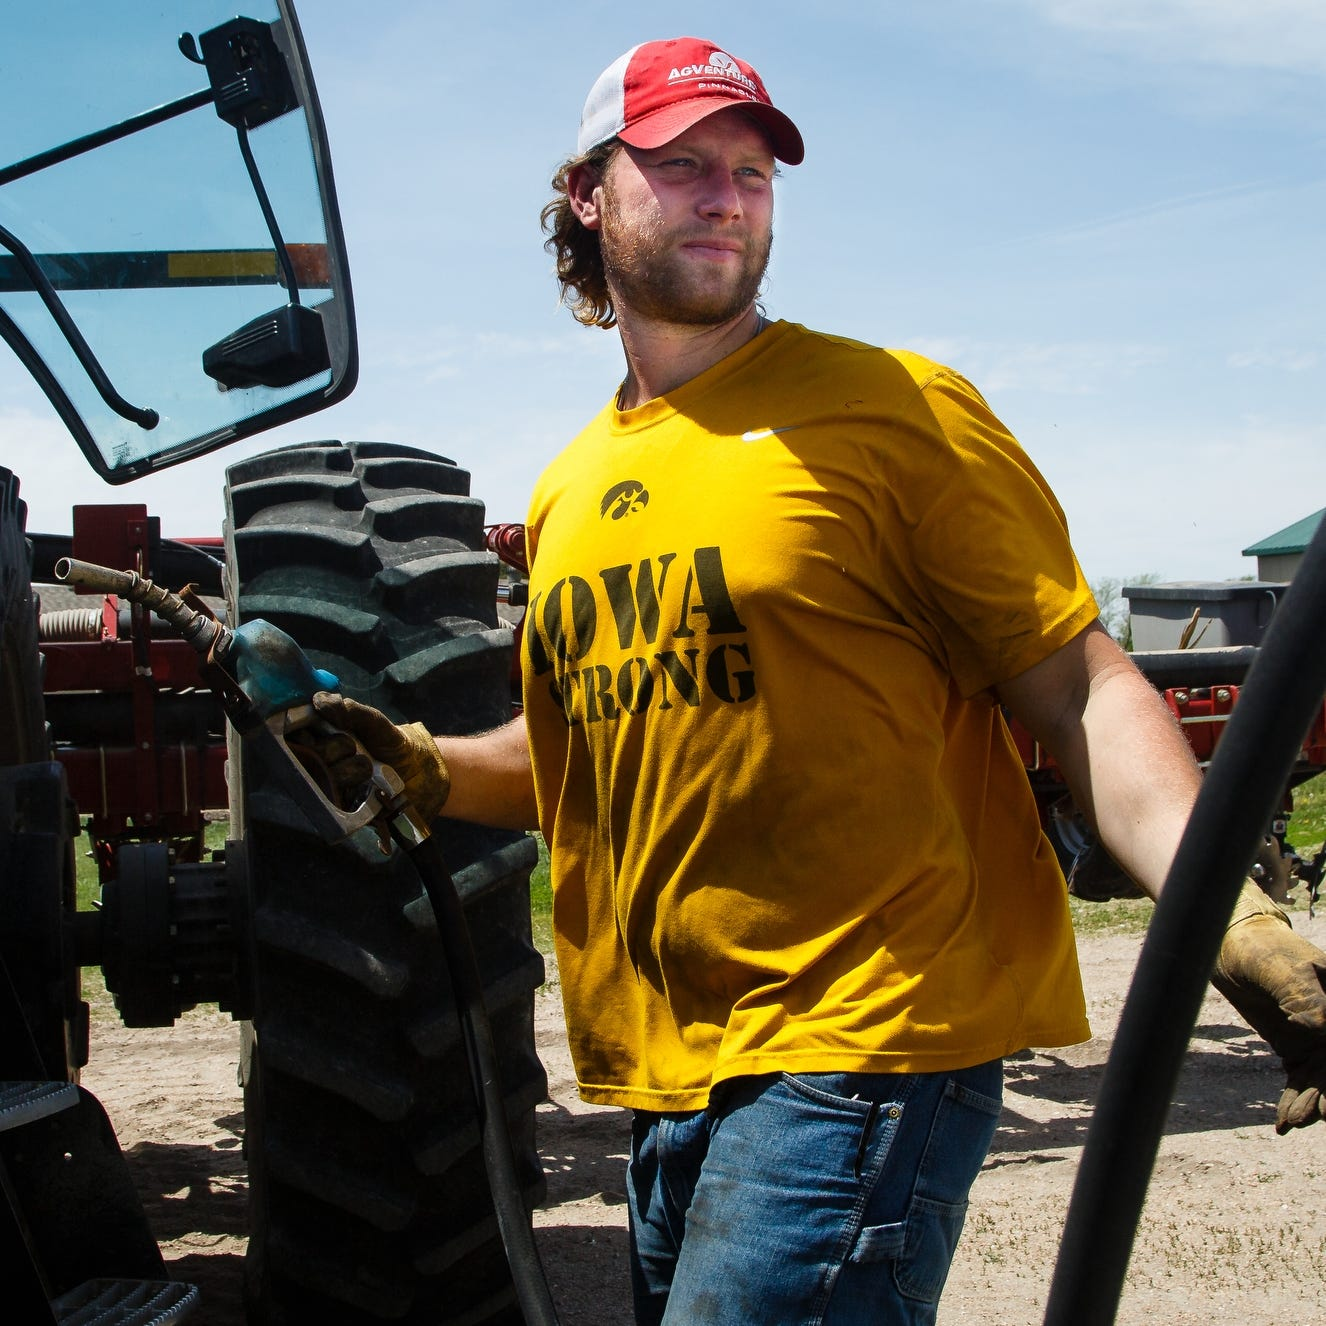 Leistikow: Inside the new life and mind of Drew Ott, an incomparable, hard-luck Hawkeye